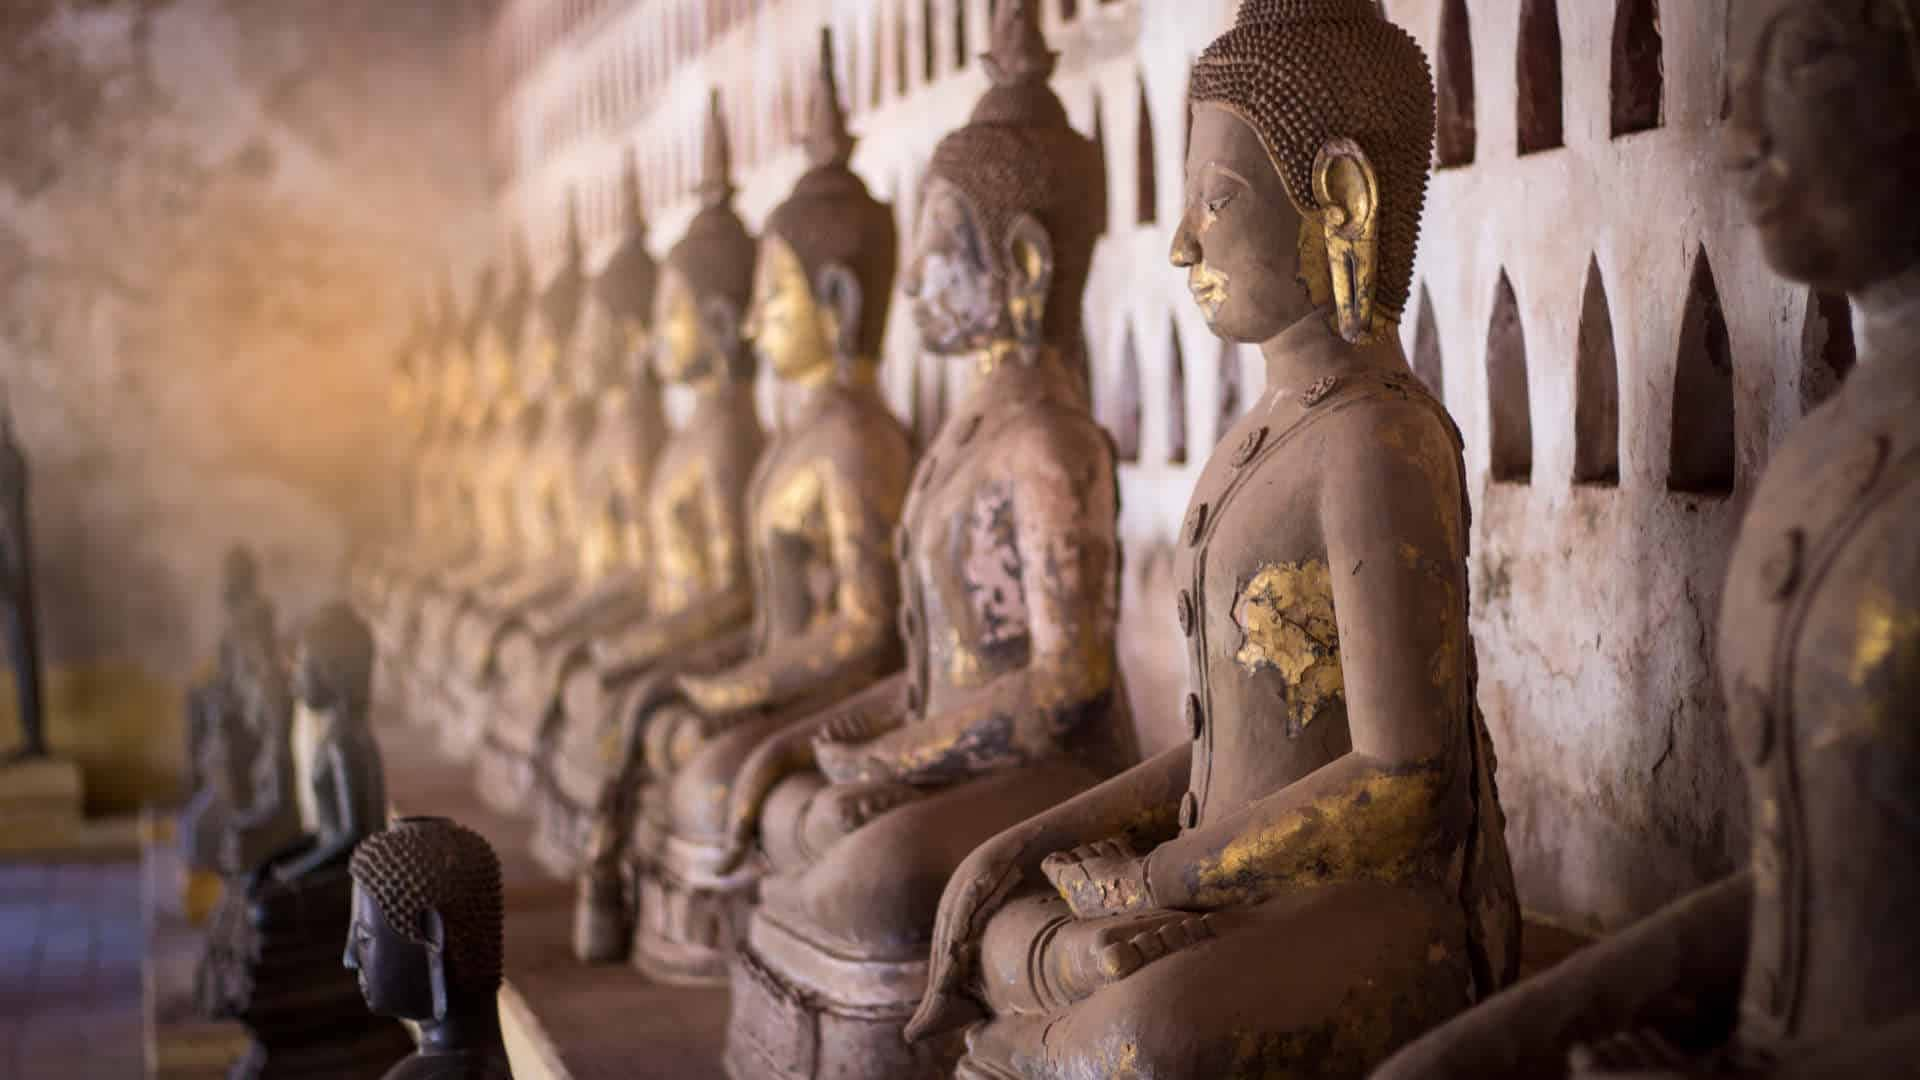 Laos temple statues